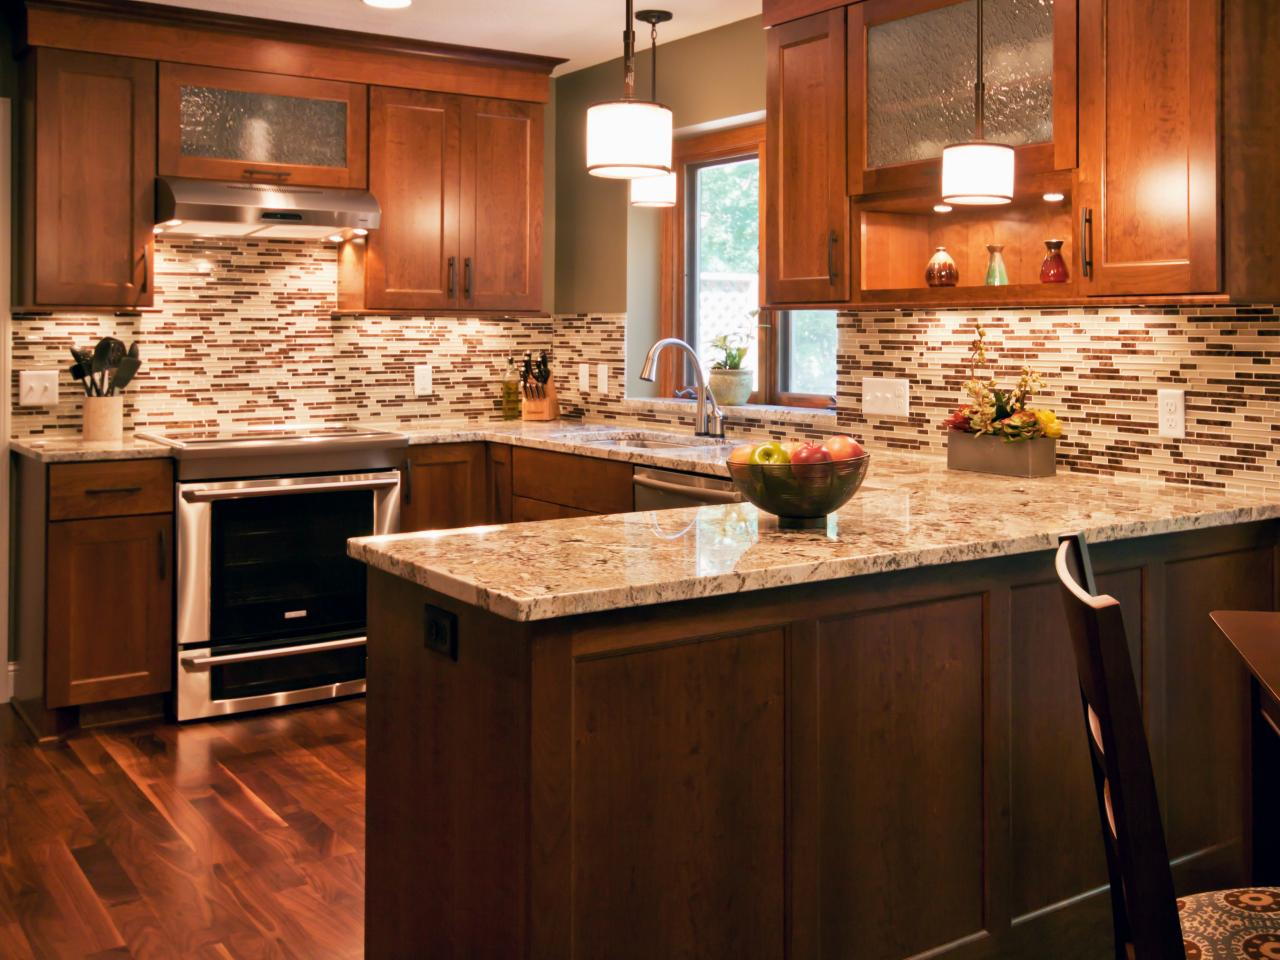 tile backsplash for kitchens 75 kitchen backsplash ideas for 2020 tile glass metal etc 4553